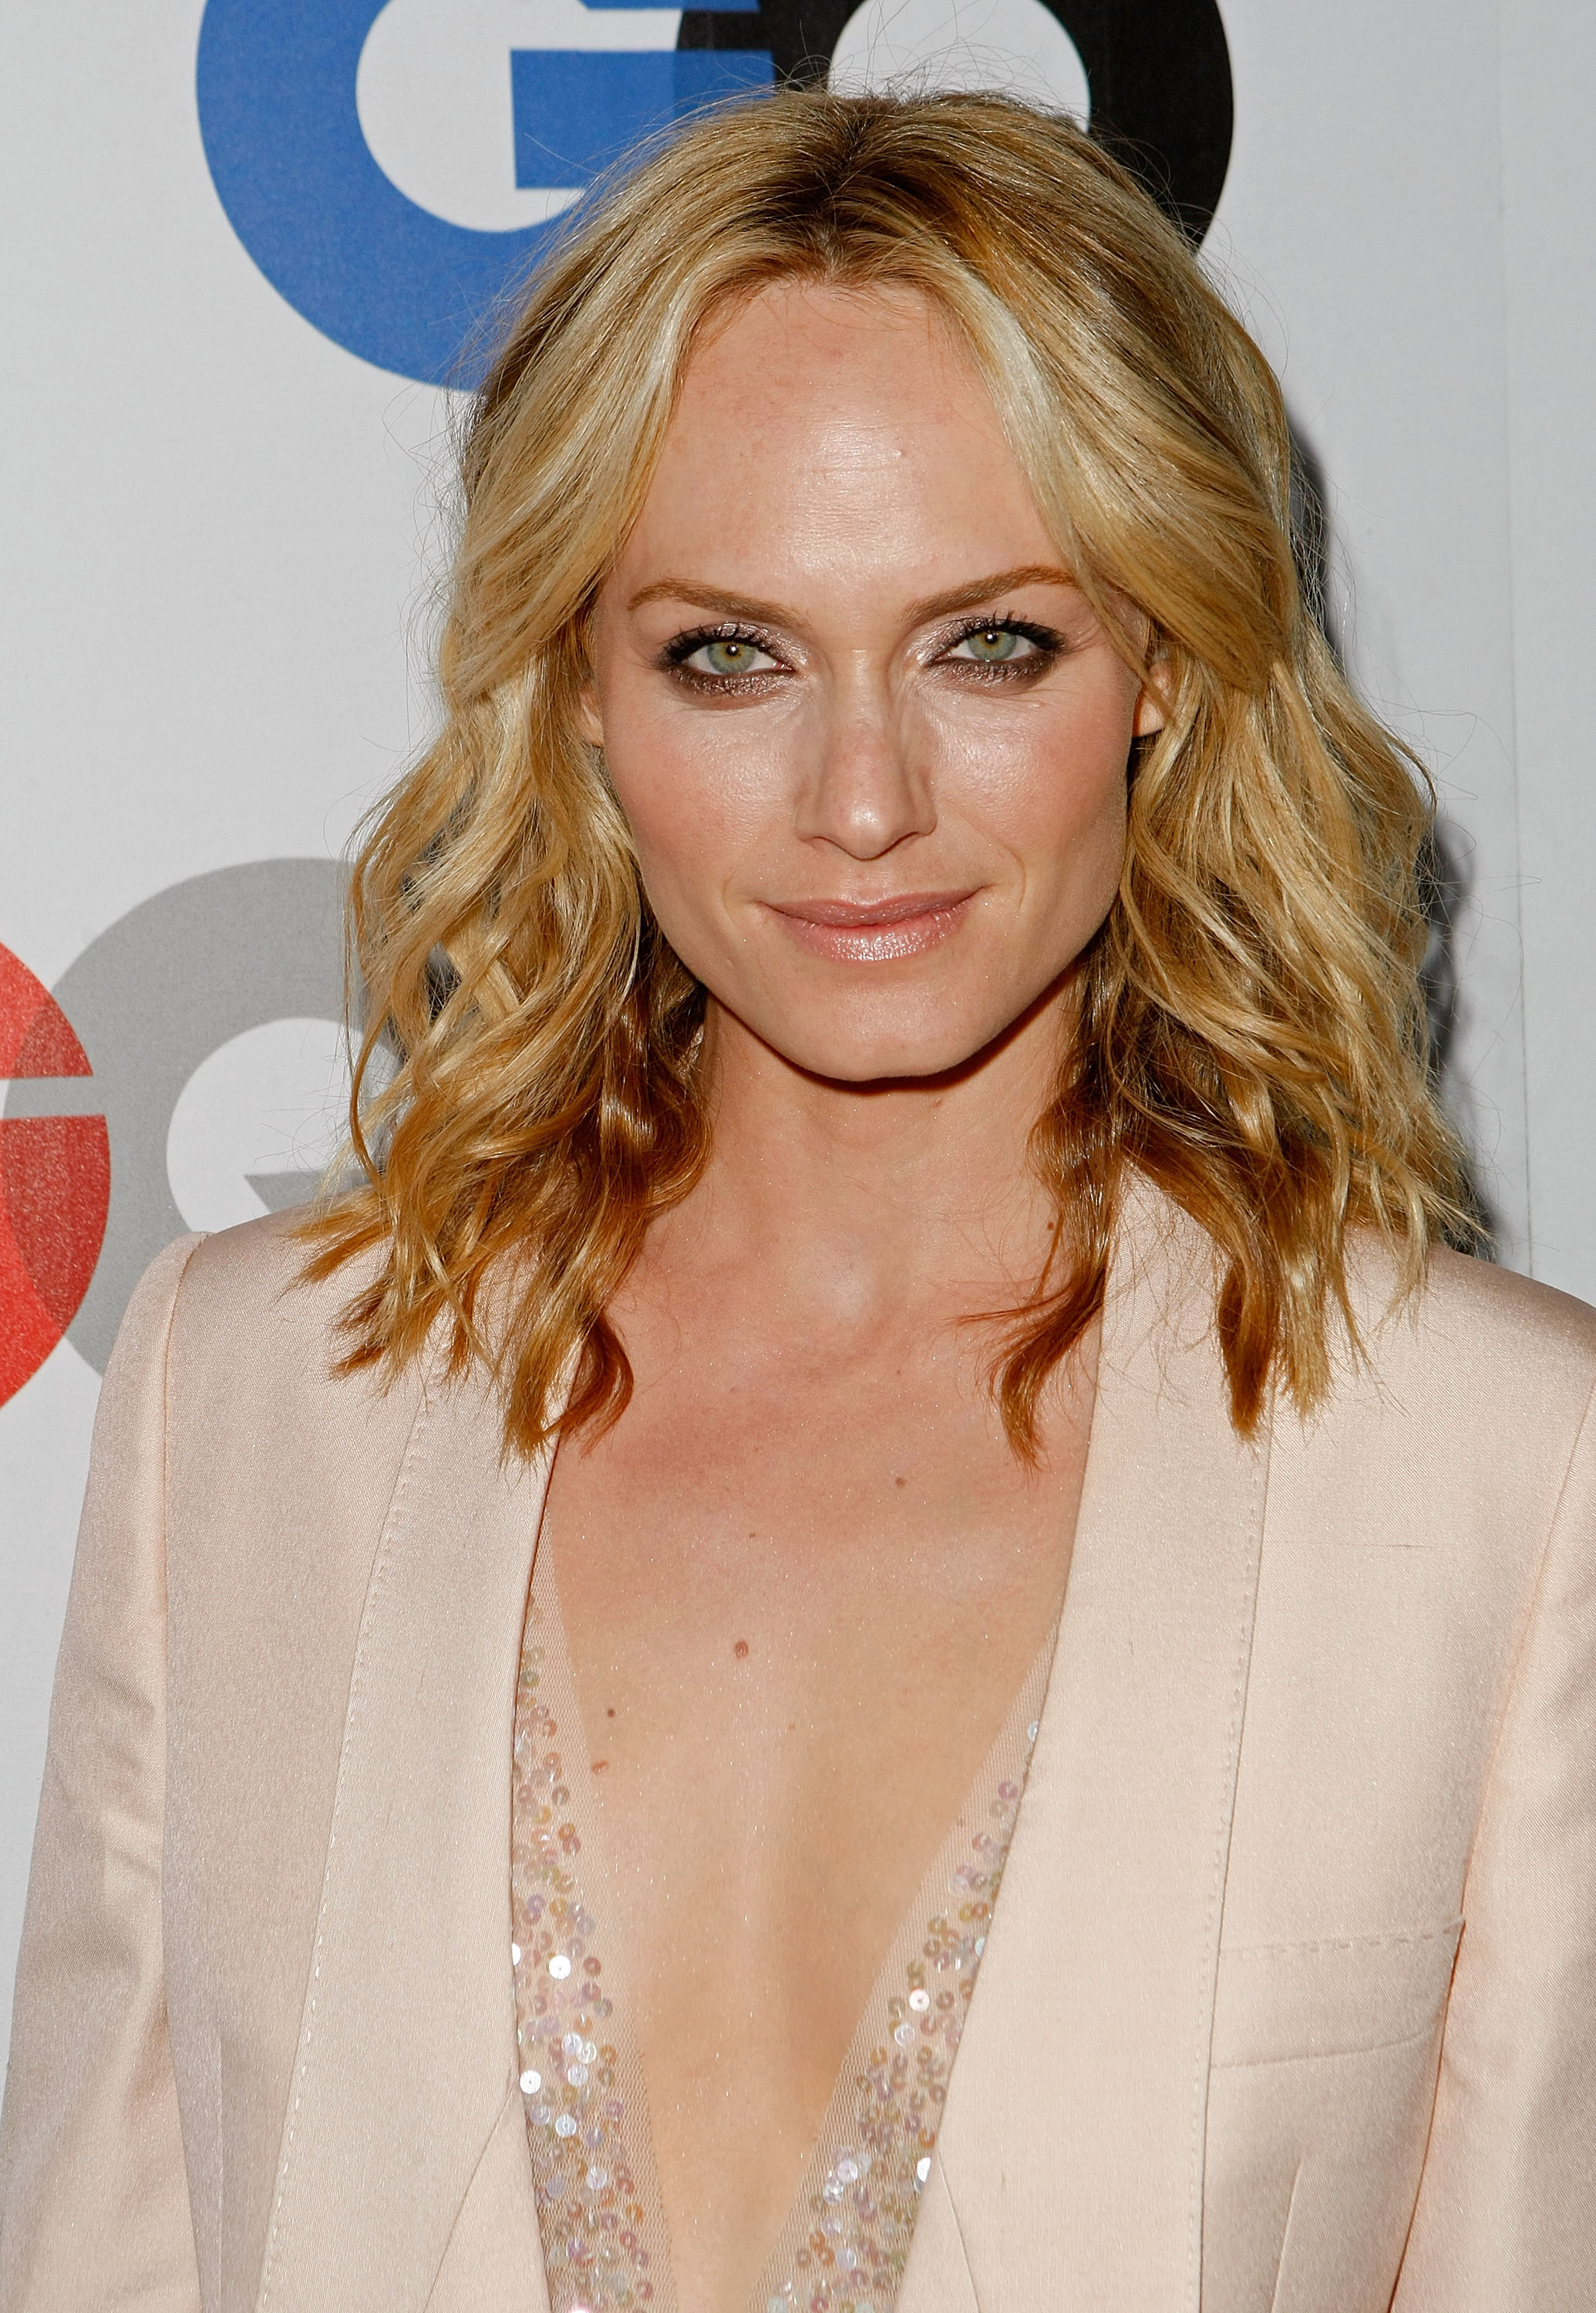 96557_Celebutopia-Amber_Valletta-GQ_Men_of_the_Year_party-02_122_1003lo.jpg